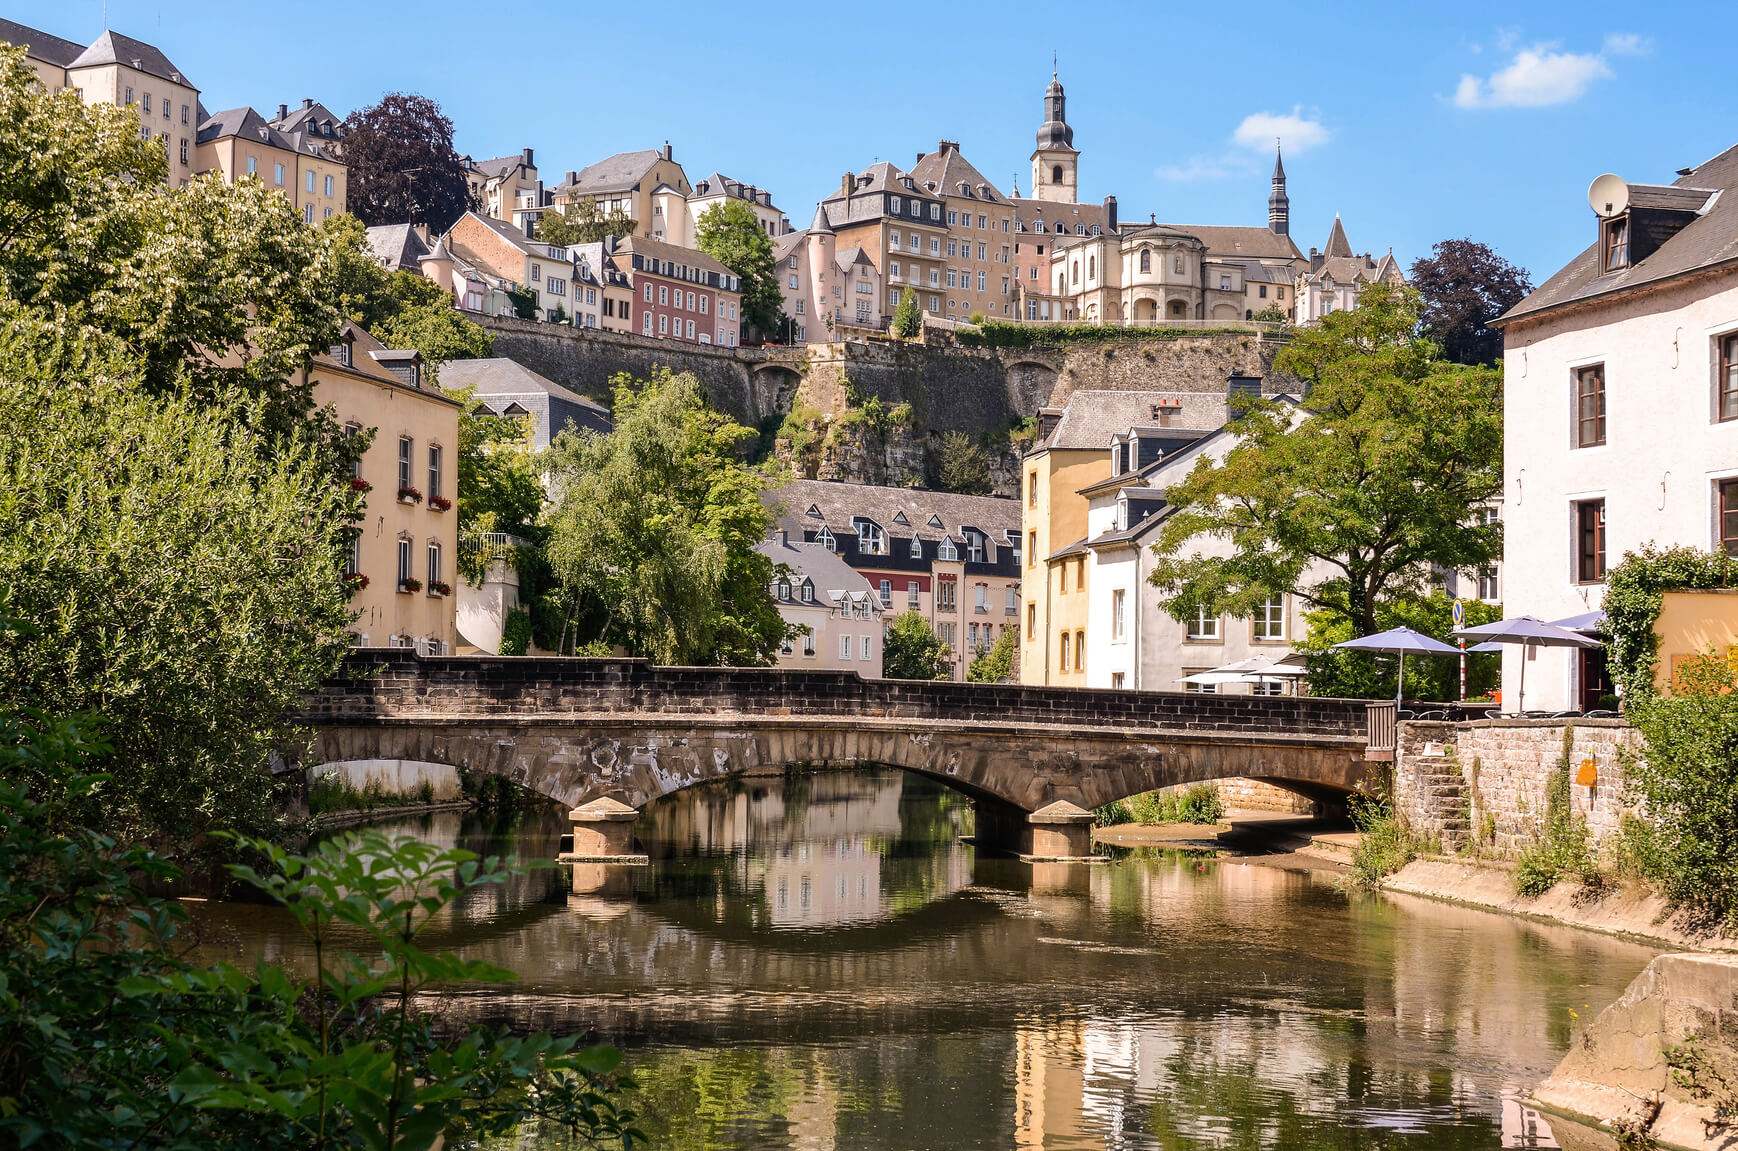 HOT!! Boston to Luxembourg for only $259 roundtrip (Oct-Mar dates)